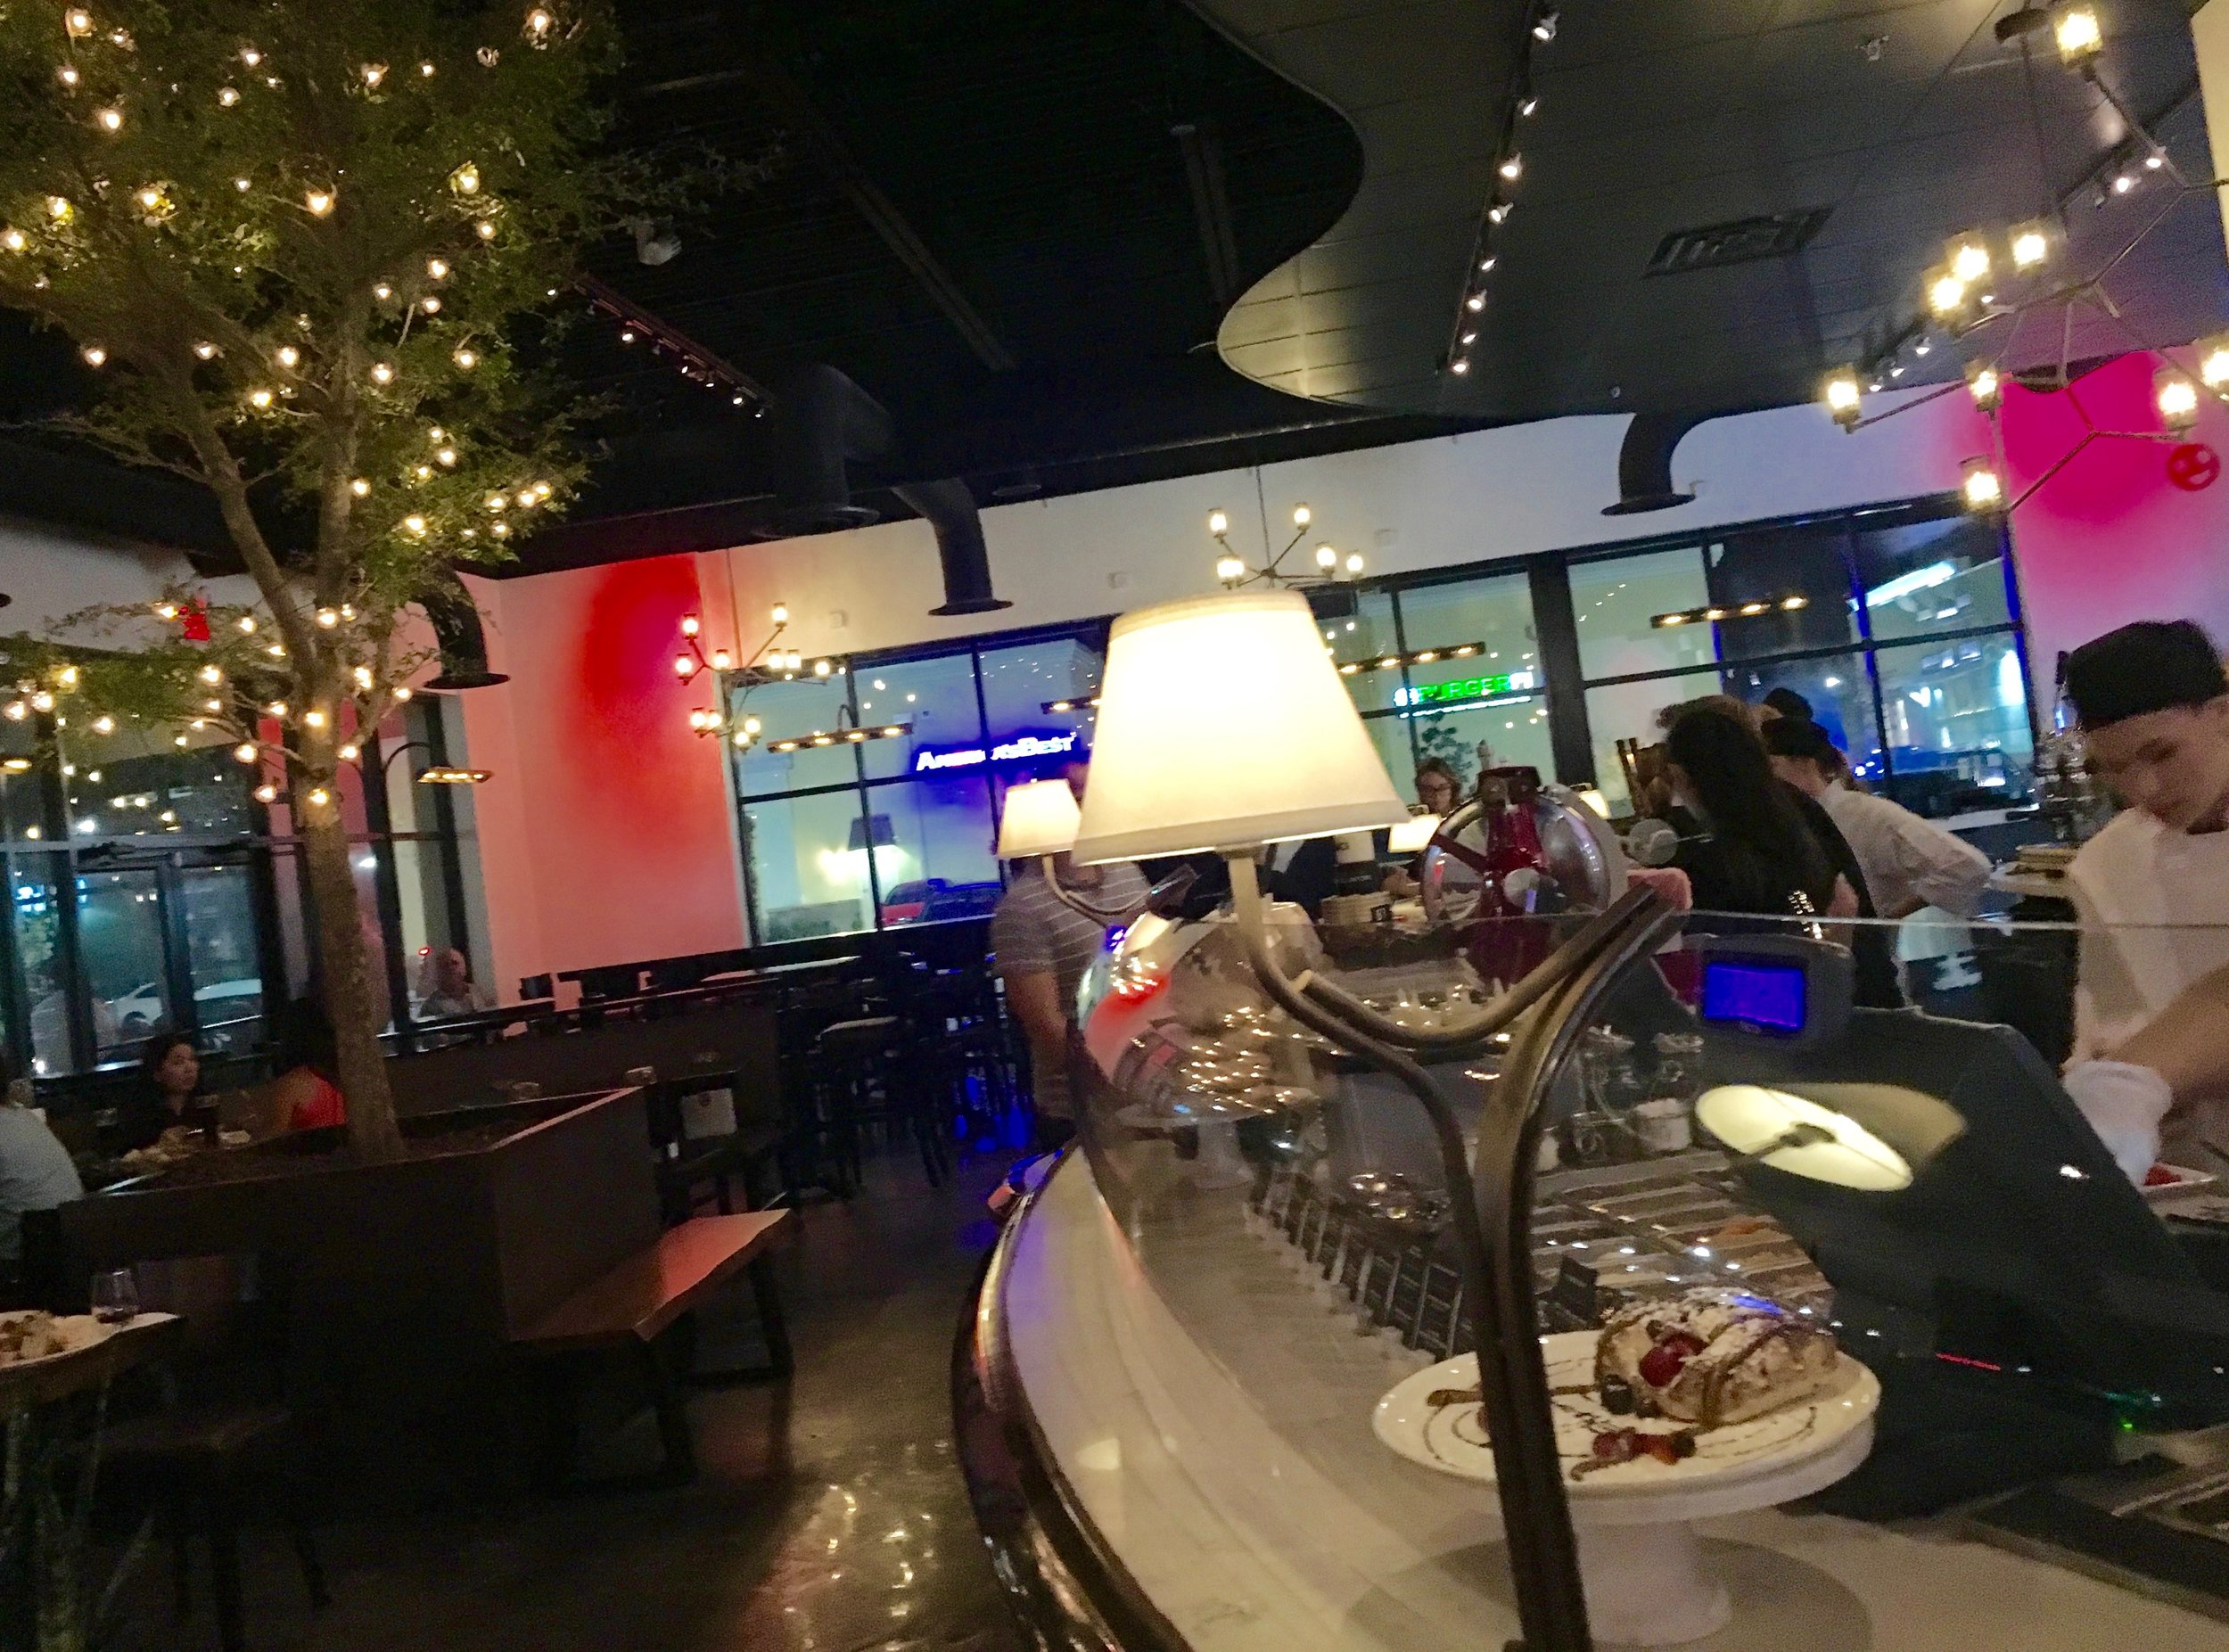 Here's the MidiCI dining room. At night, even though the place is counter service, the room is pretty. It's dark with great tunes playing (too loudly, in my opinion)and twinkly lights all around. I'm told the room is bright during sunlight hour.s